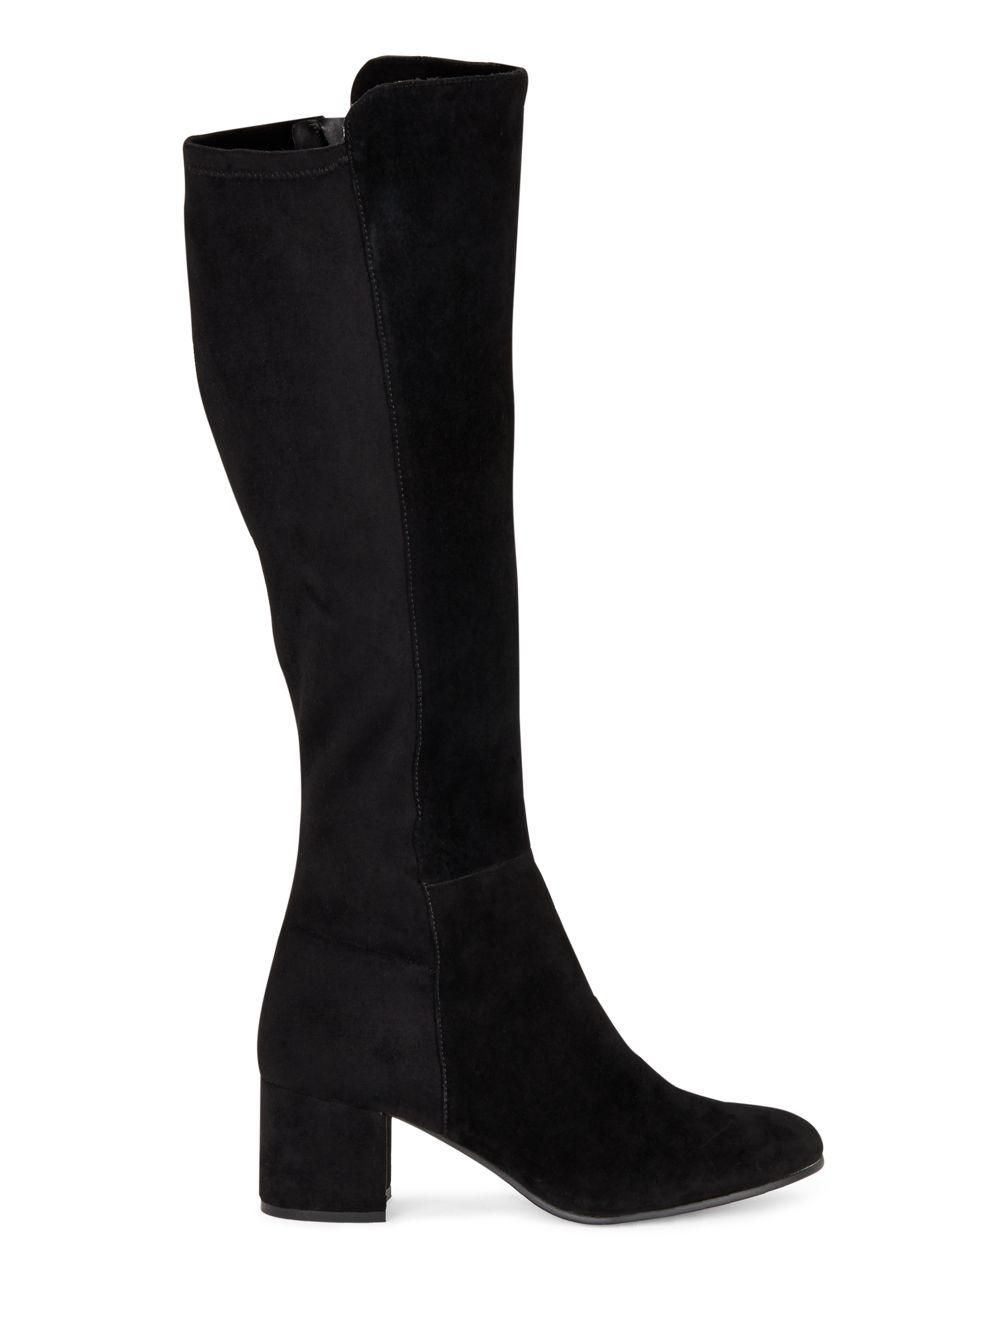 Lyst Saks Fifth Avenue Suede Knee High Boots